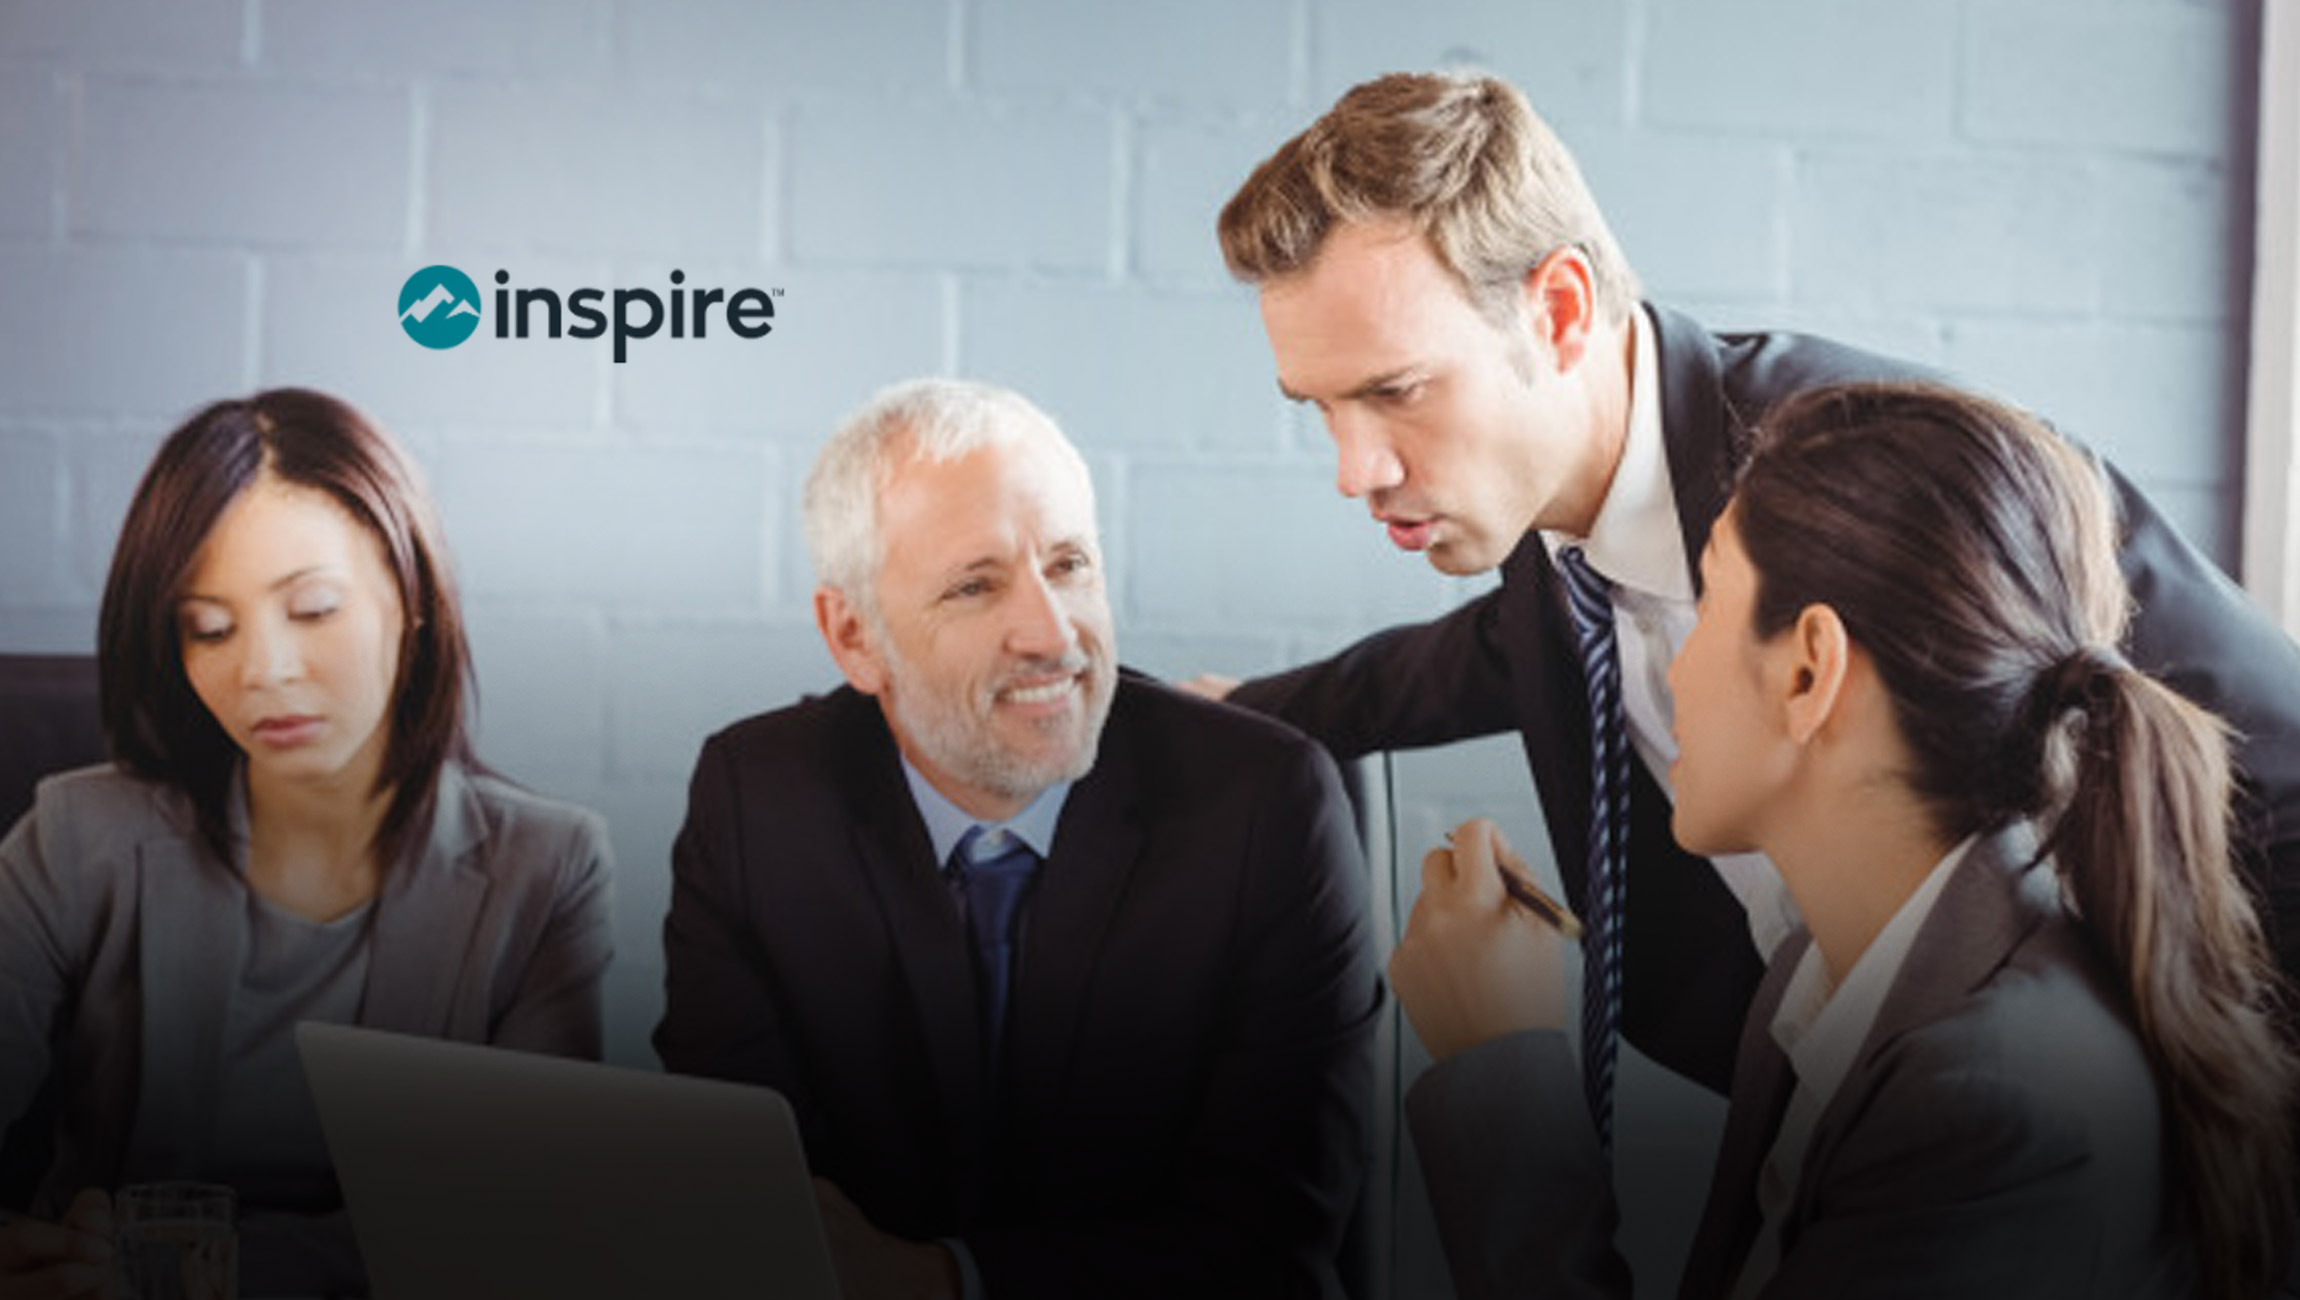 Inspire Software Introduces 360 Feedback and Other Key Features Into the Flow of Work